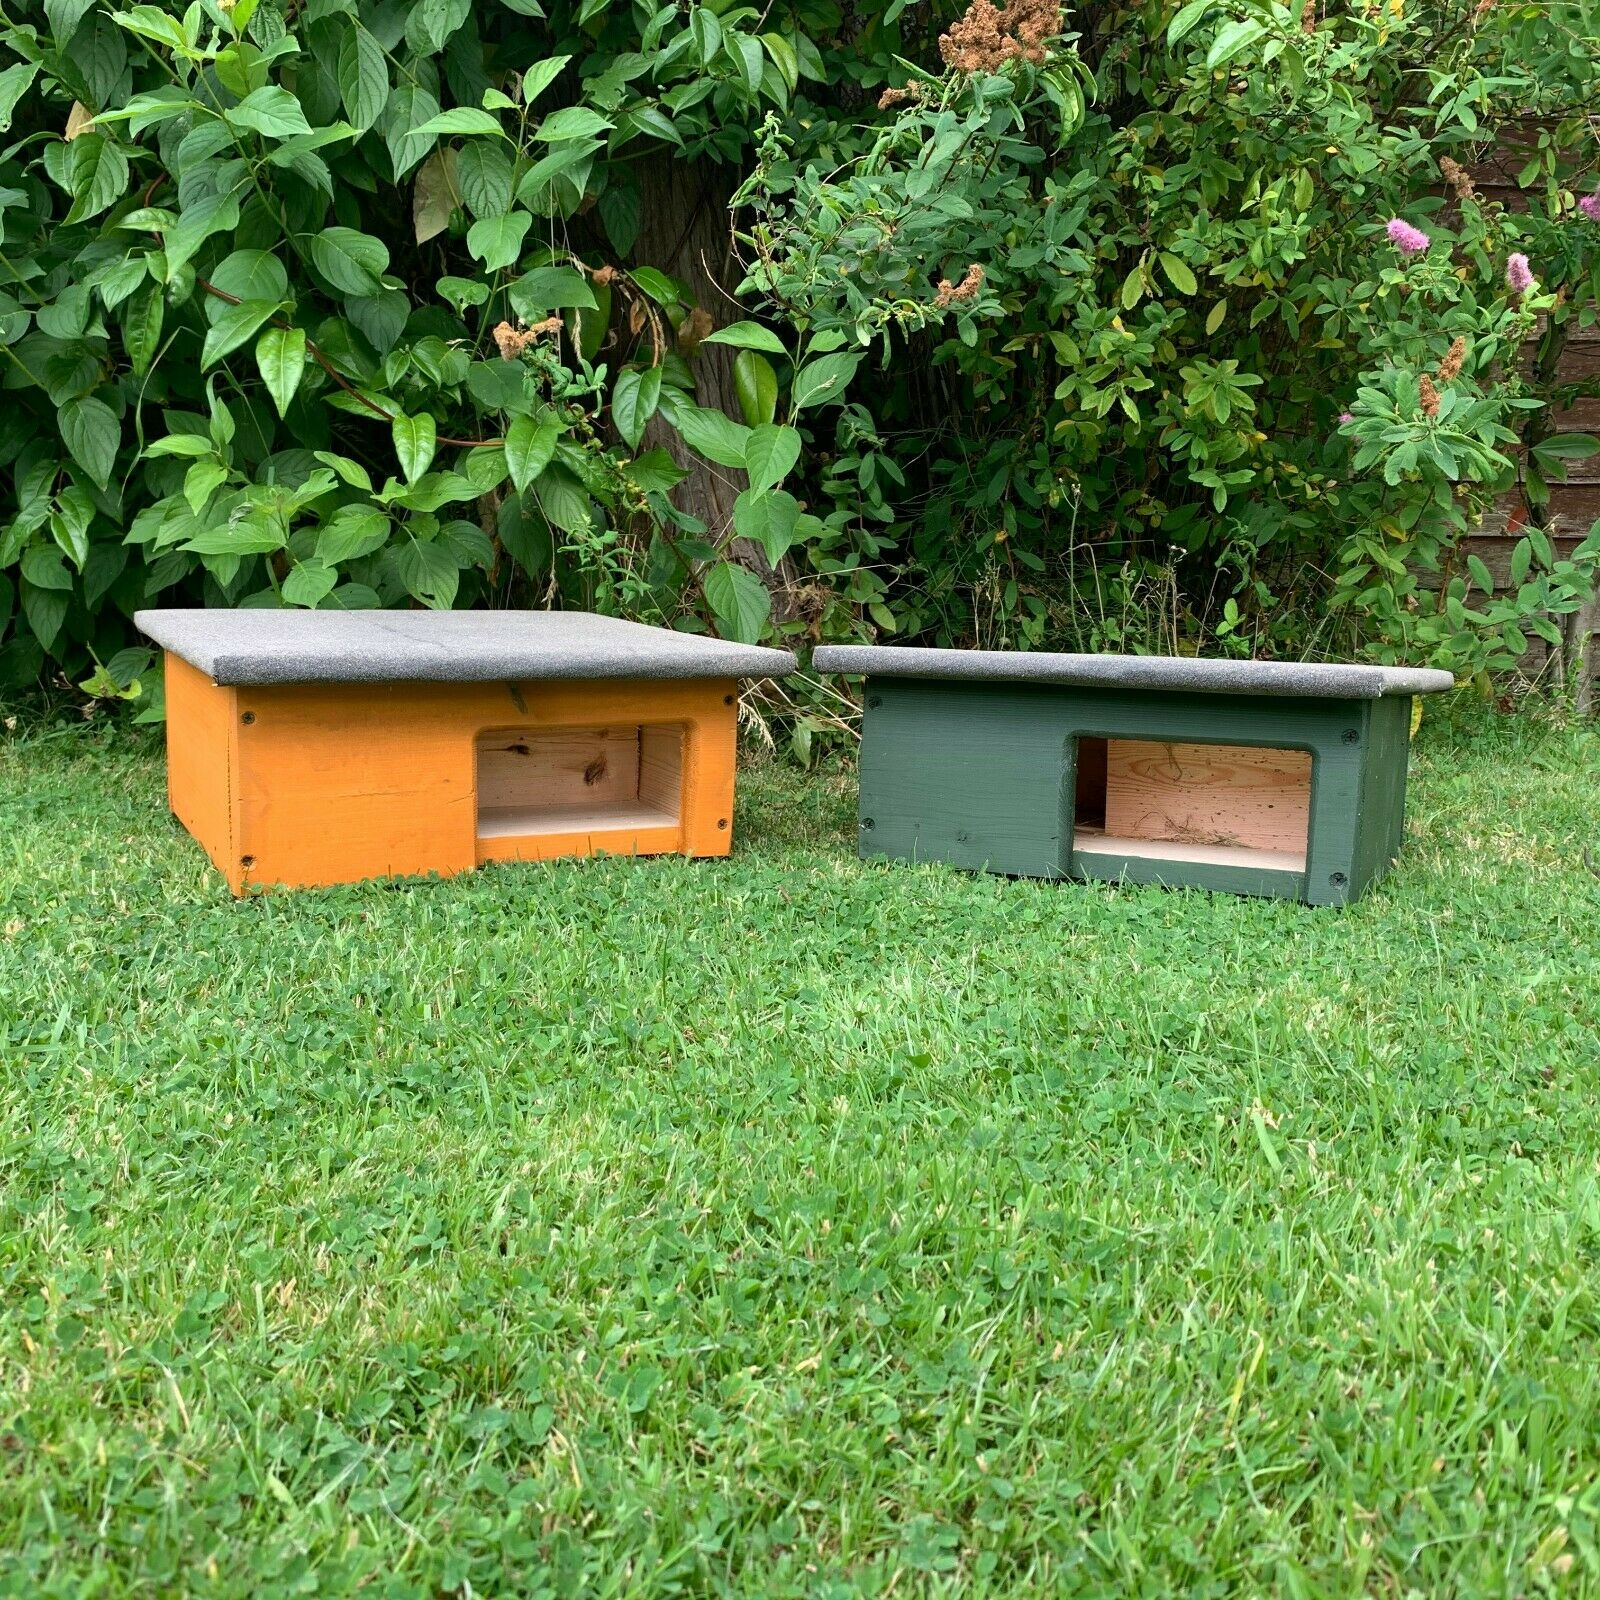 2 x WOODEN HEDGEHOG HOUSE & HIBERNATION SHELTER WITH FREE BEDDING AND CARE SHEET